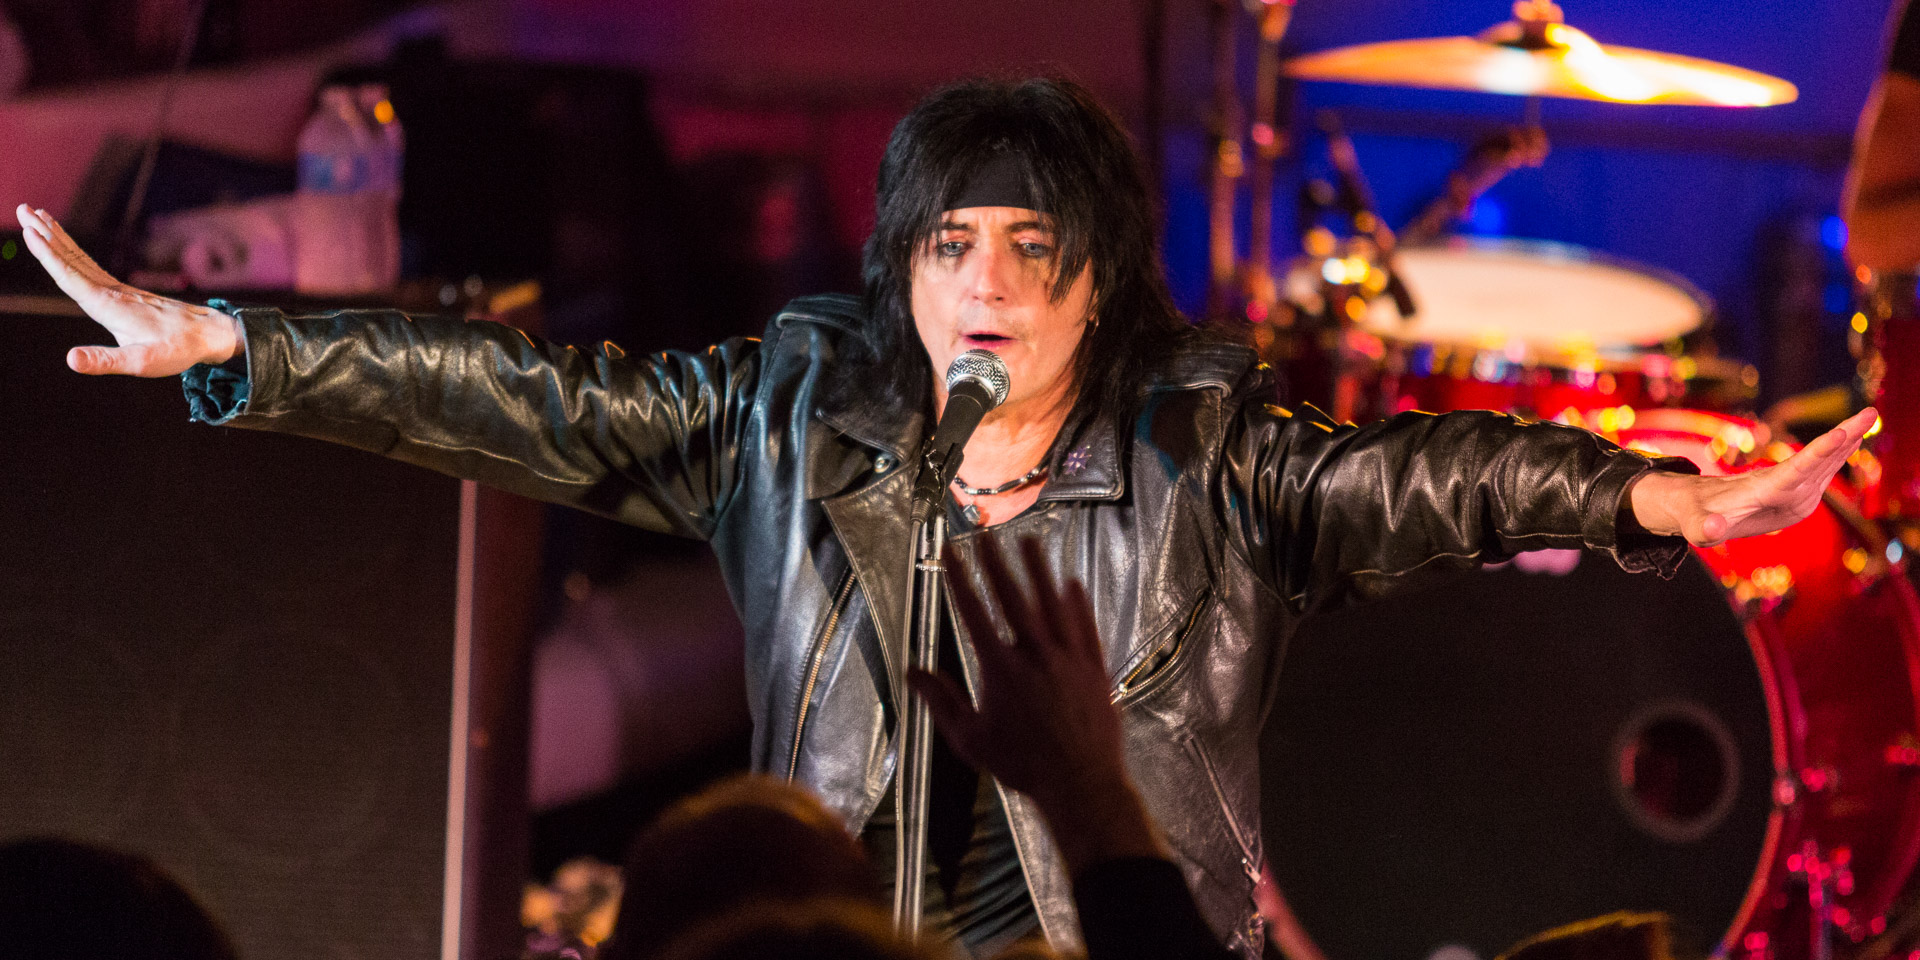 L.A. Guns live at Whiskey Room in Raleigh 4/19/2013.